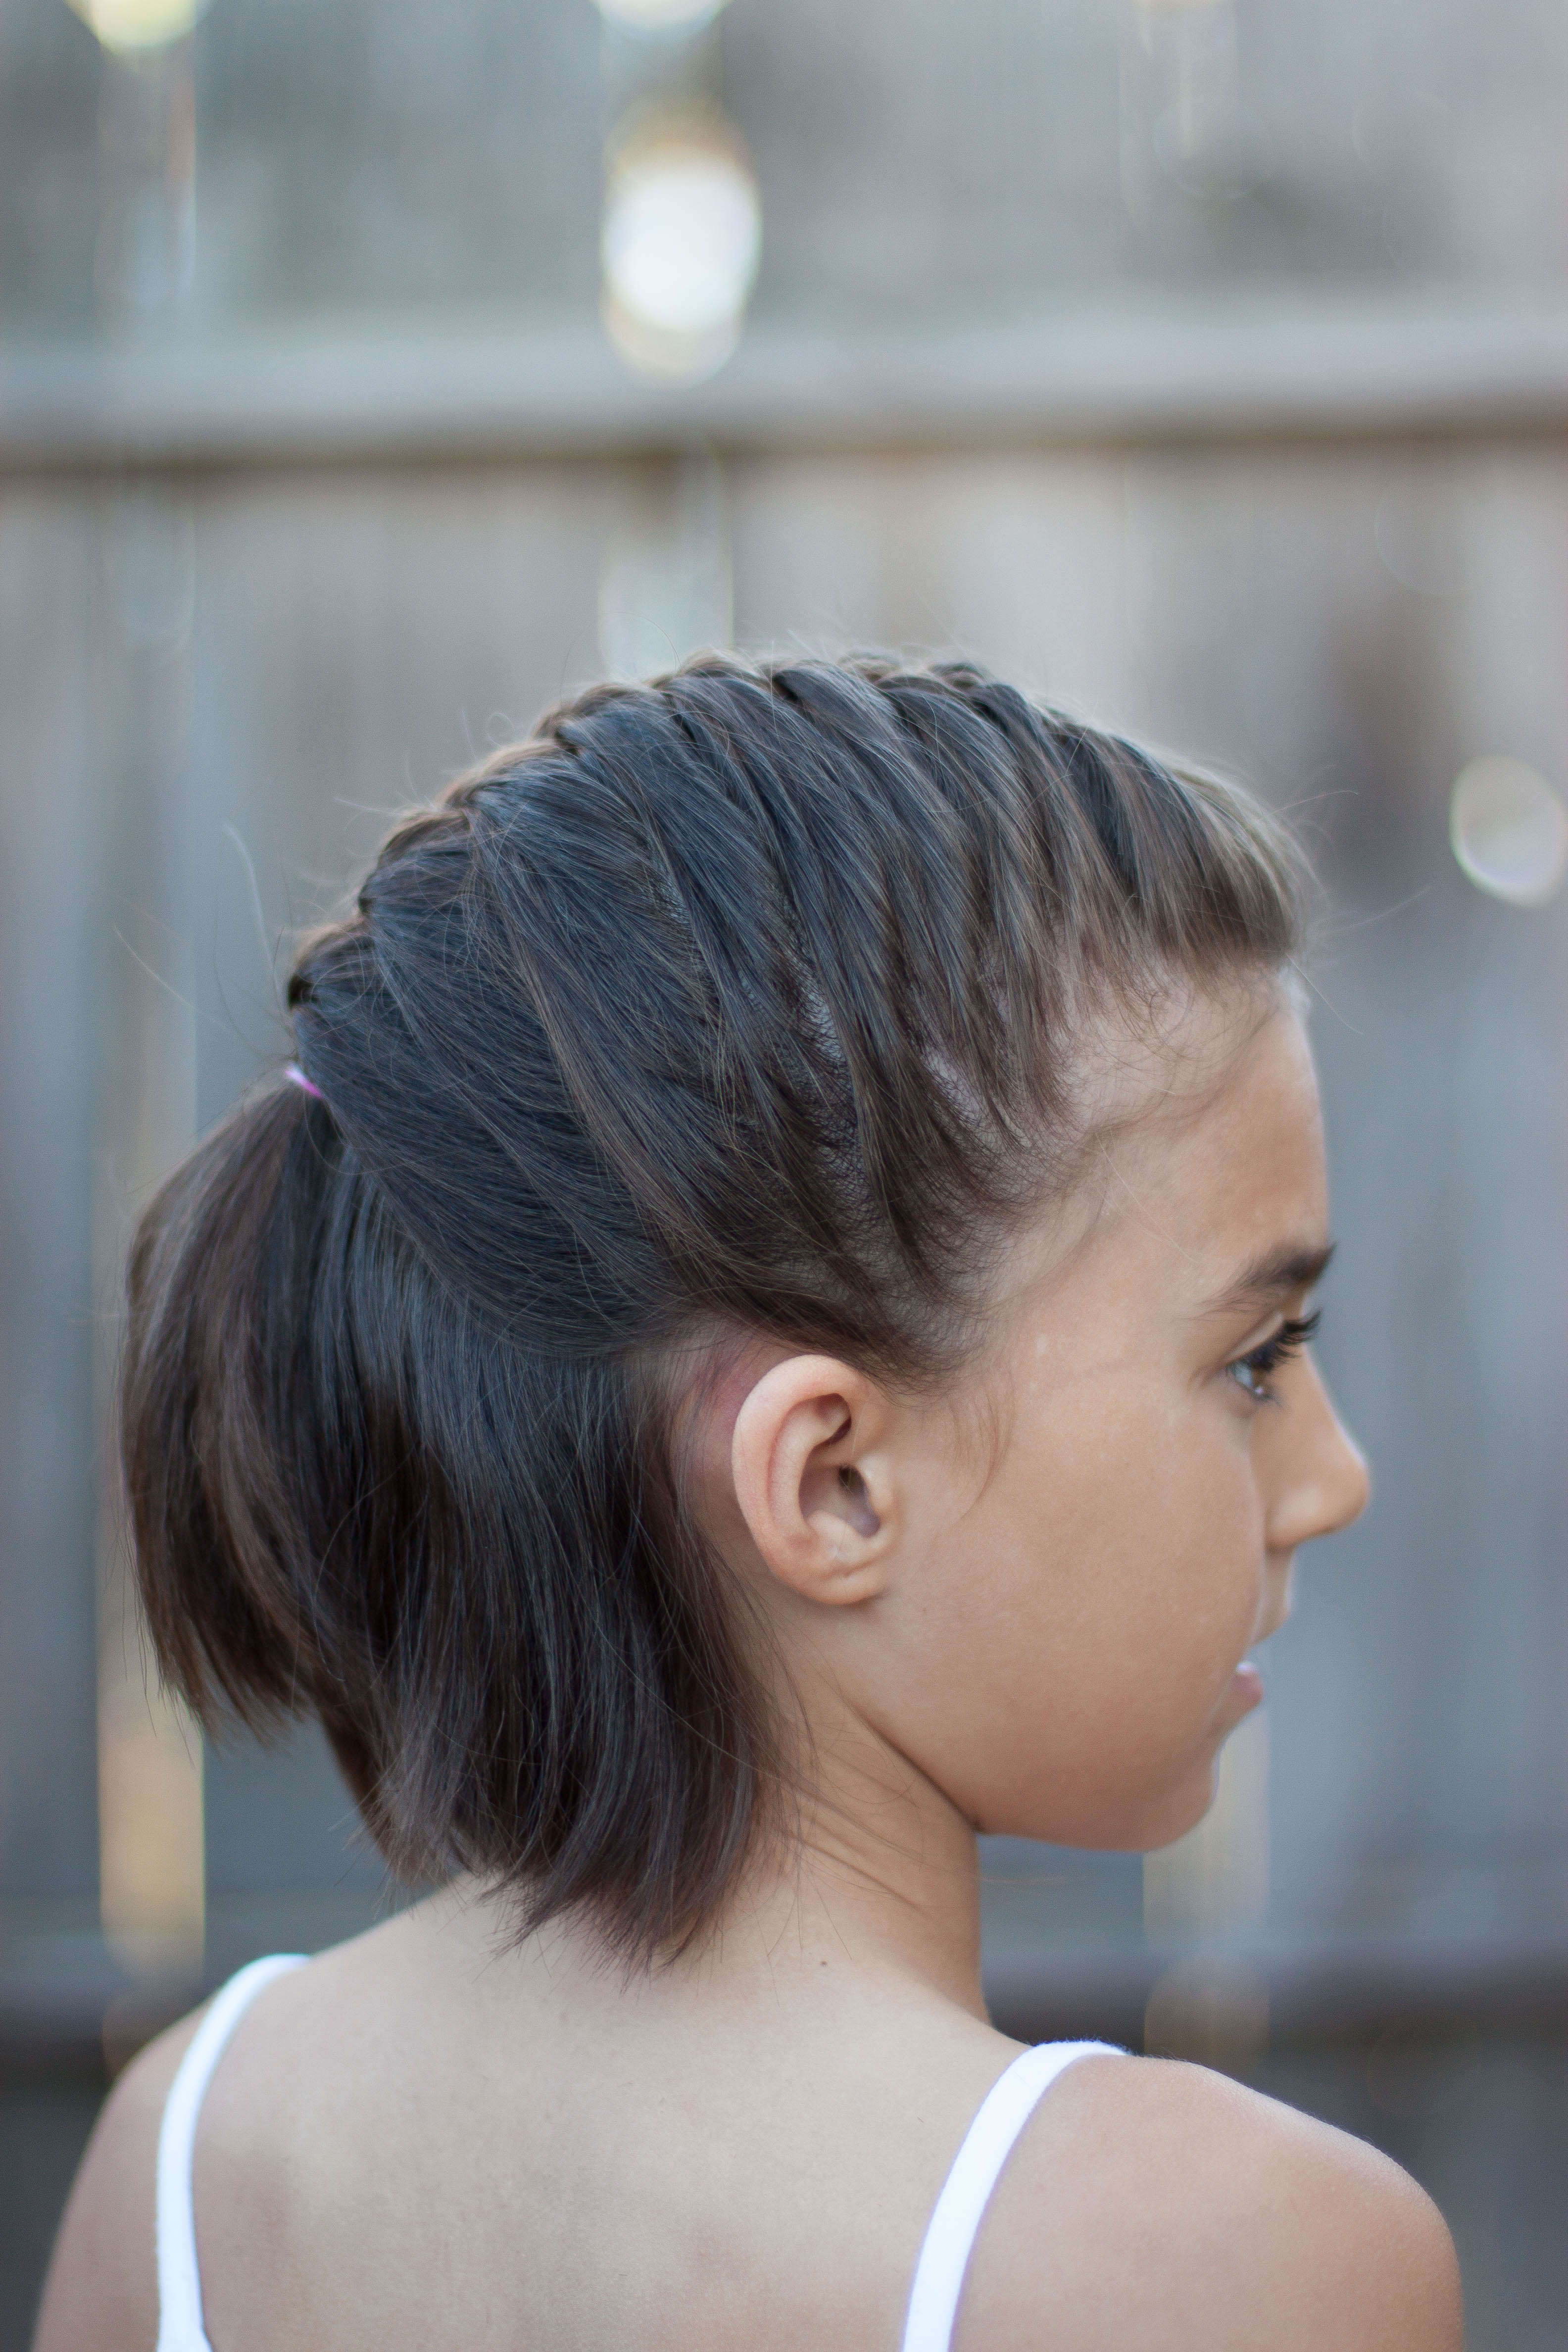 27 cute kids hairstyles for school - easy back to school hairstyle